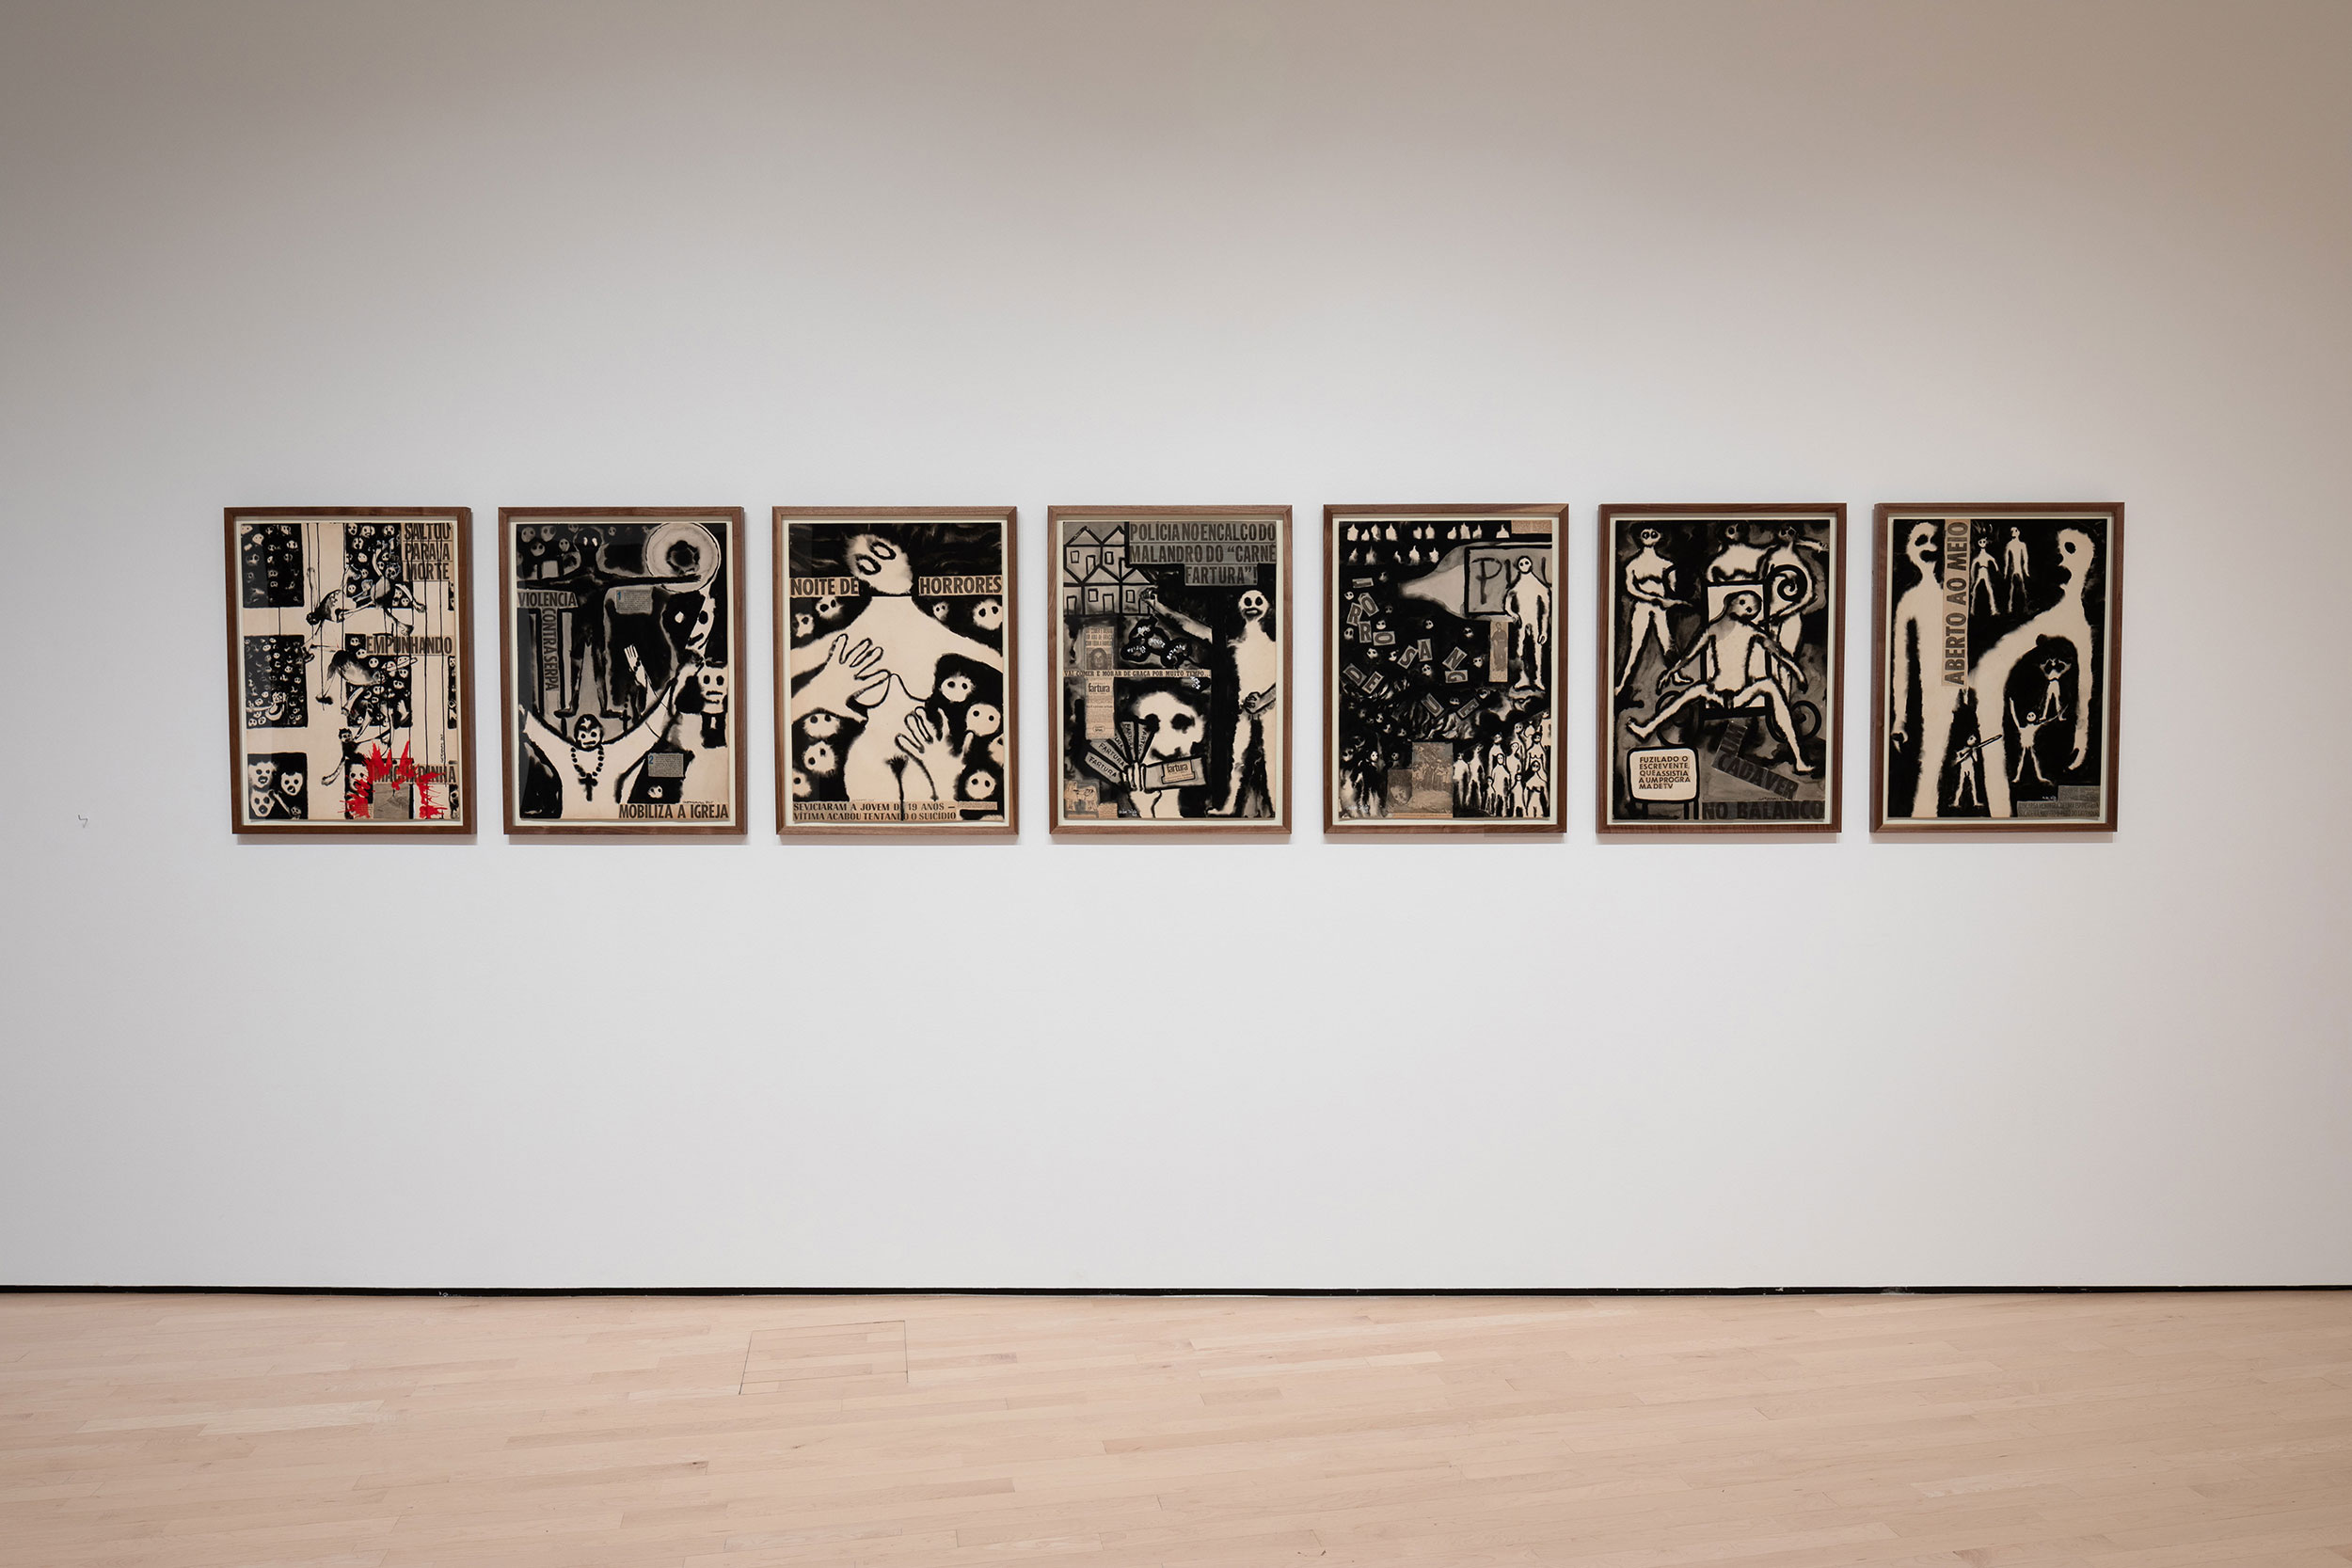 <i>The Edge of Things: Dissident Art under Repressive Regimes</i>, installation view at the Eli and Edythe Broad Art Museum at Michigan State University, 2019. Photo: Eat Pomegranate Photography